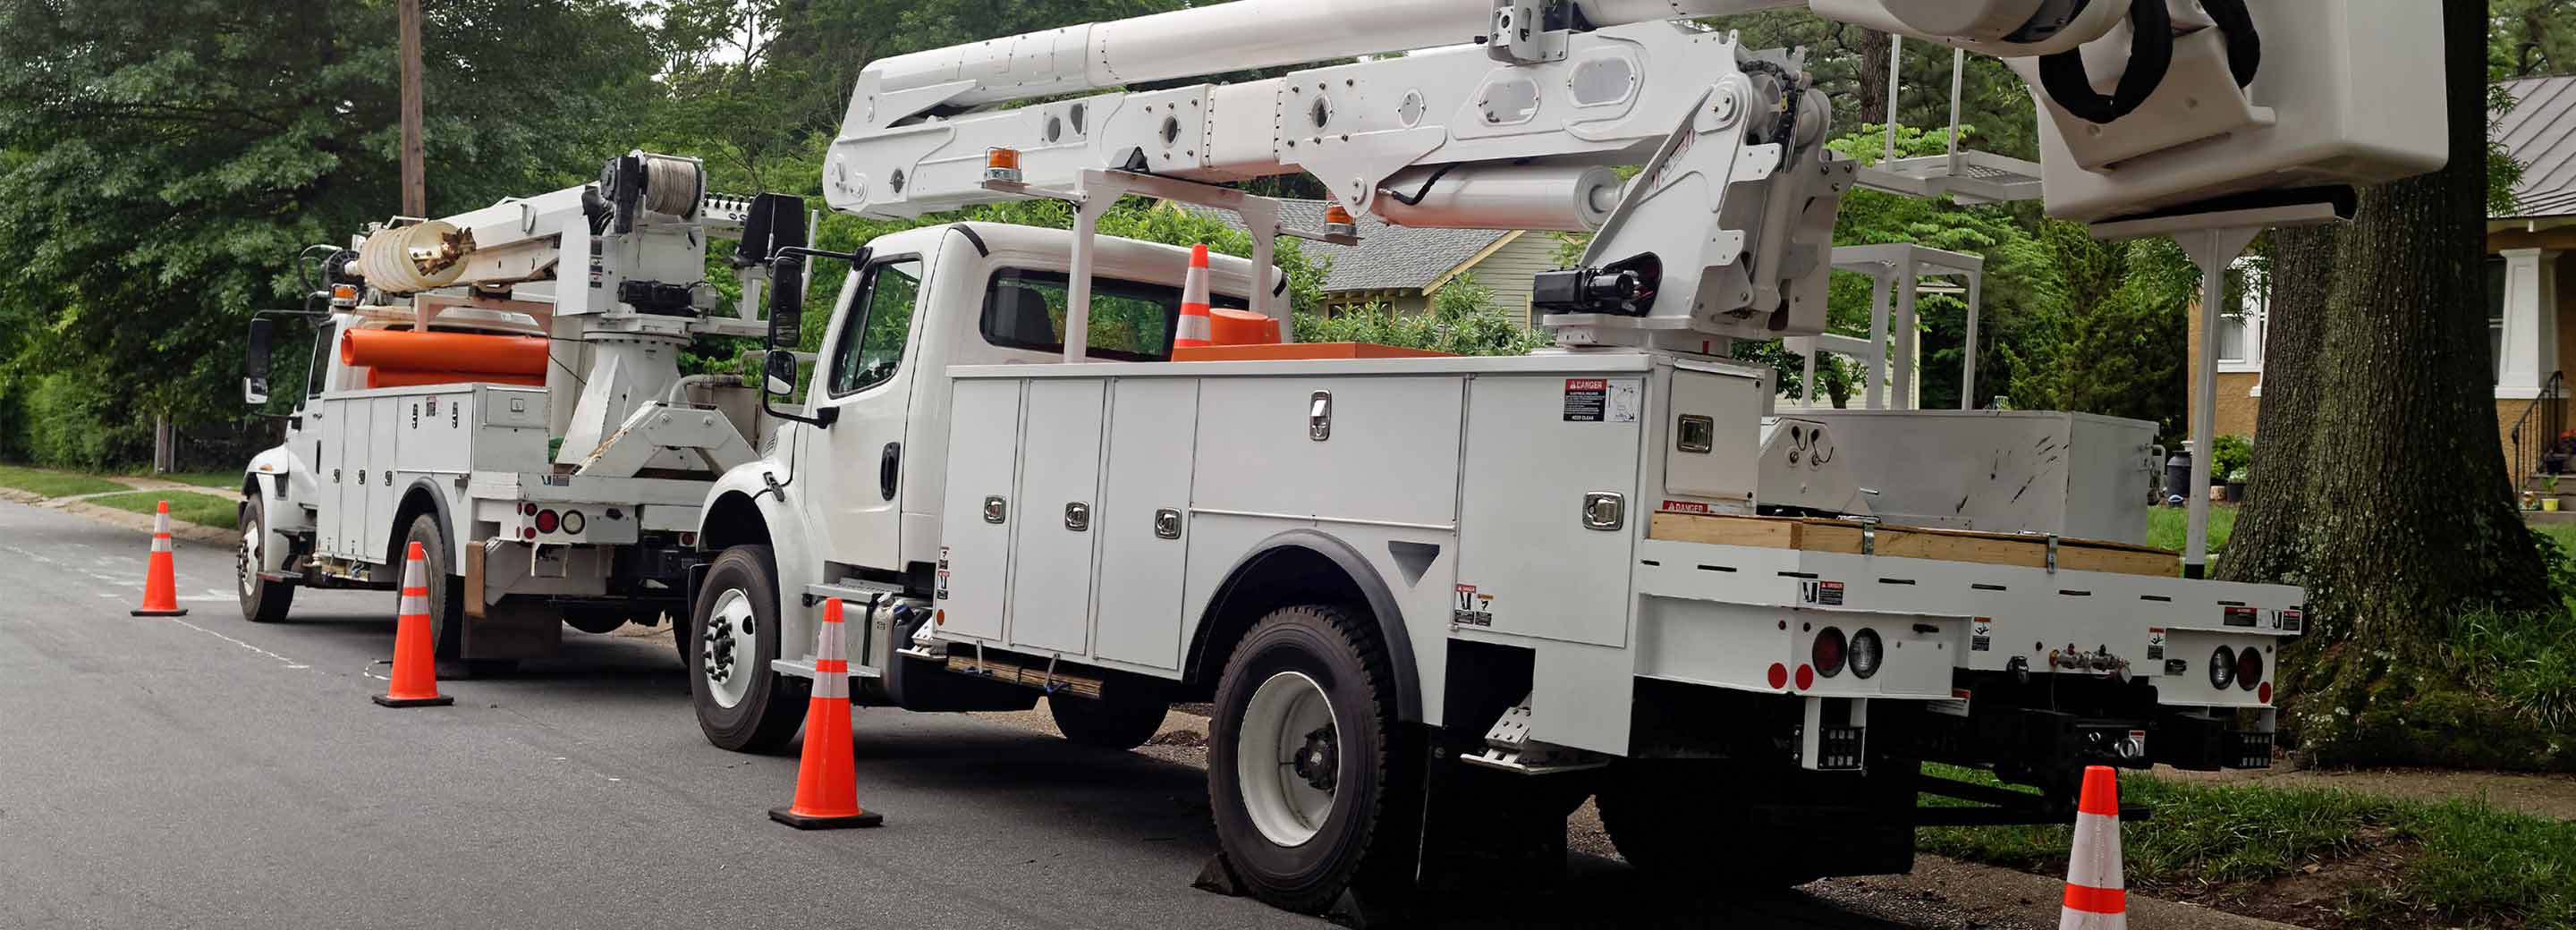 white boom truck with traffic cones